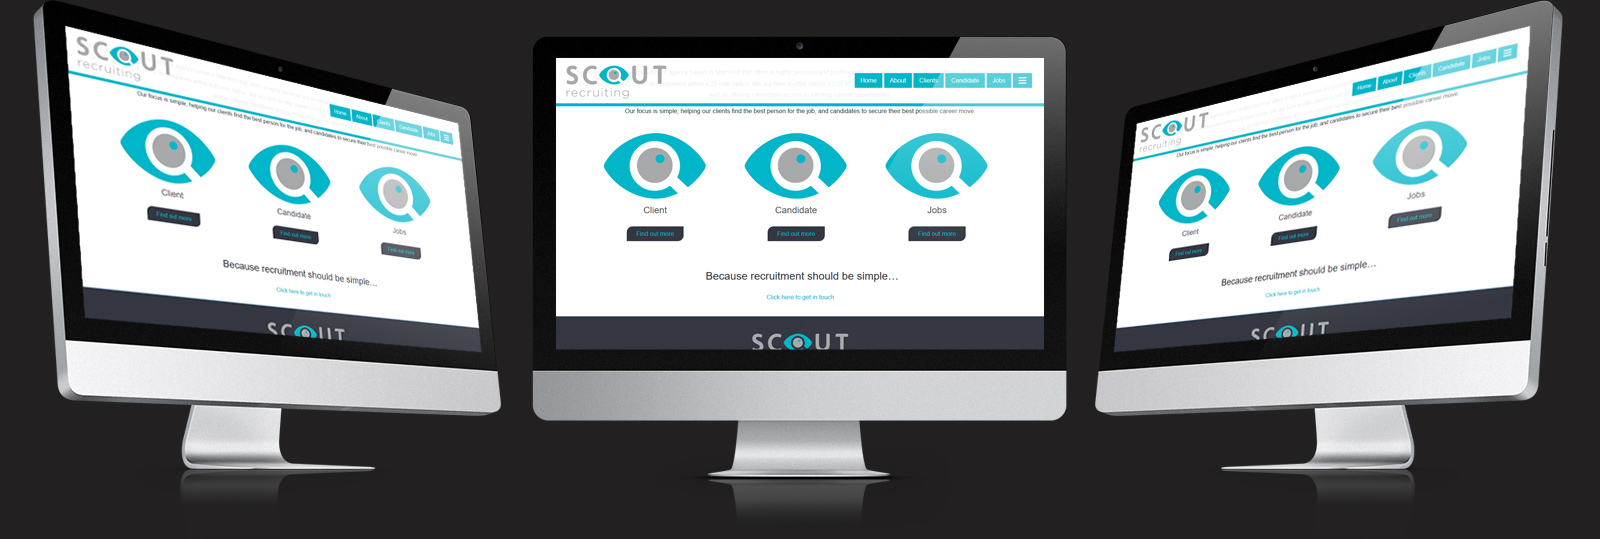 Stamford Web Design - Scout Recruiting